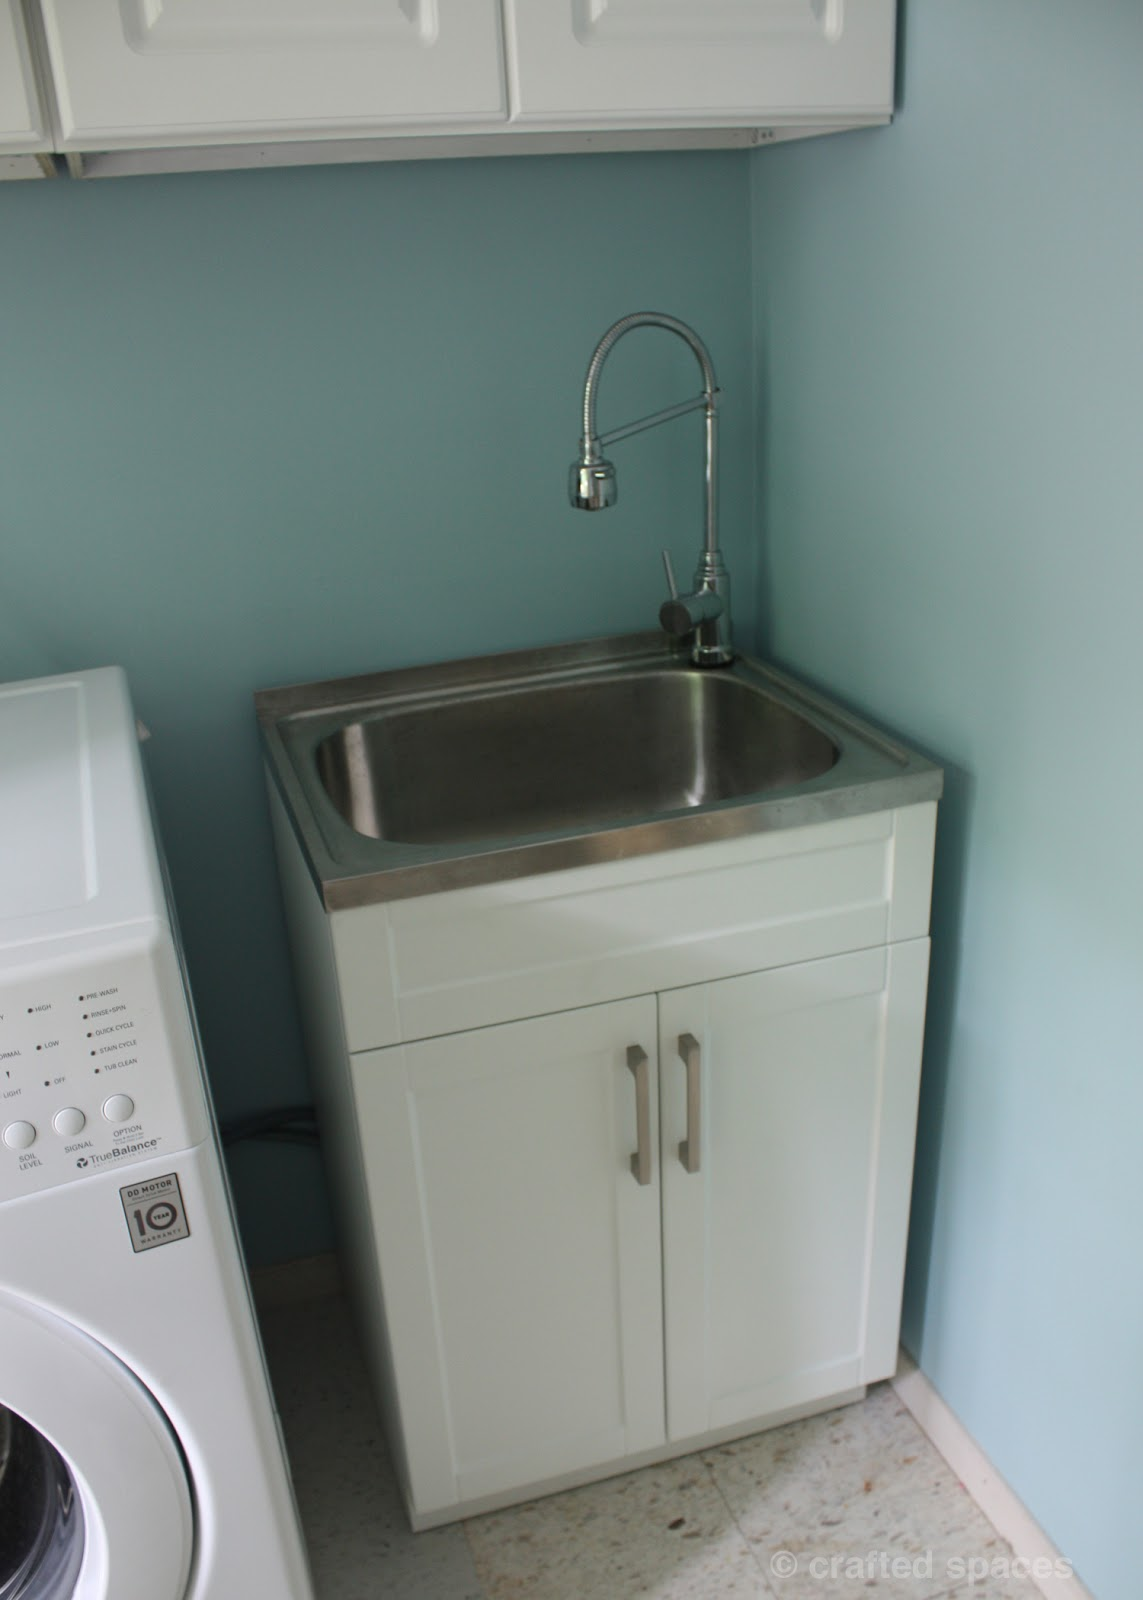 Deep Sinks For Laundry Rooms : We were really happy to get this wonderful sink. It is deep enough to ...